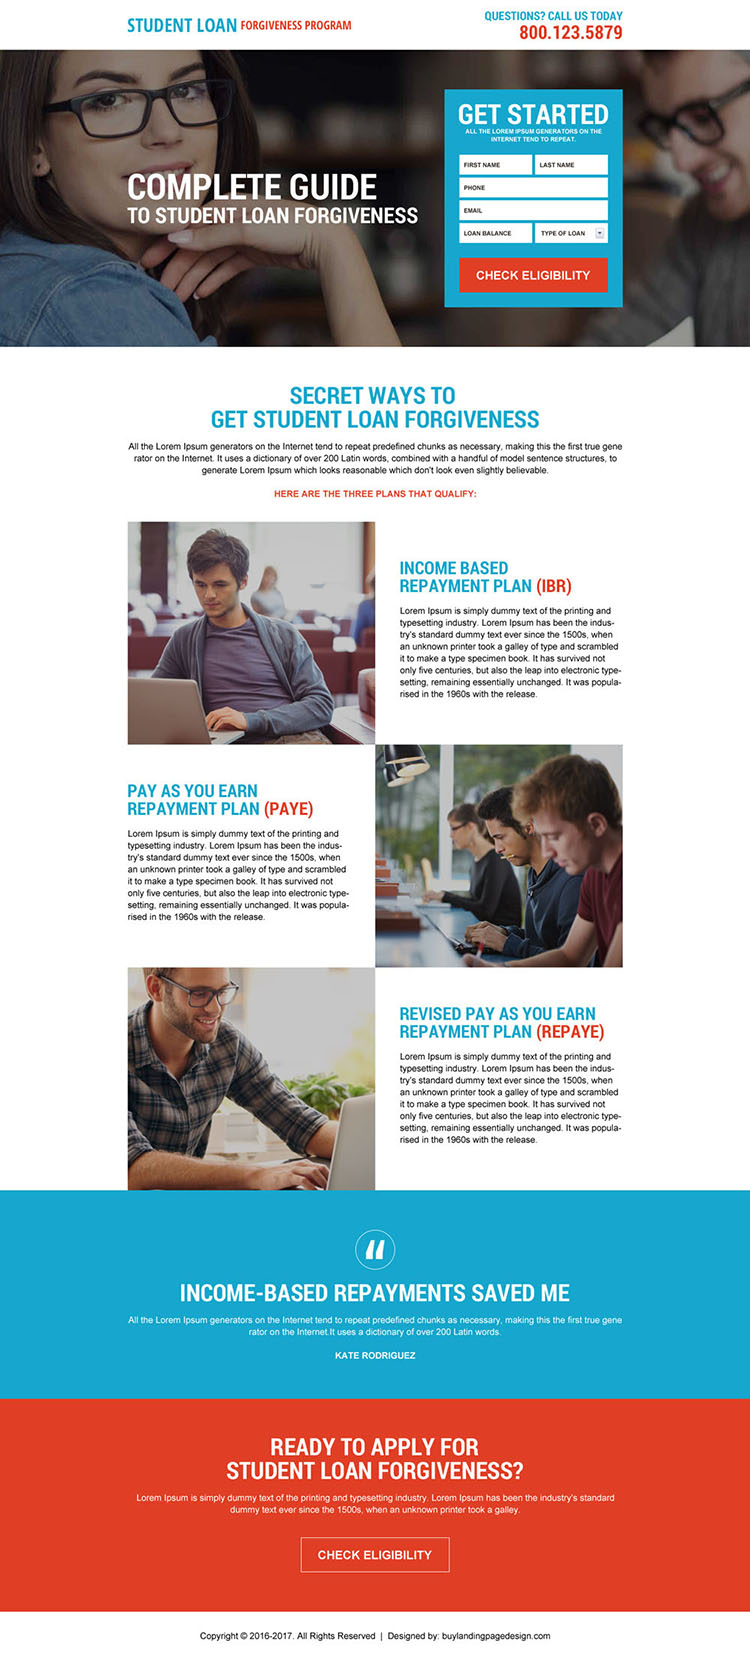 direct student loan forgiveness lead generating landing page